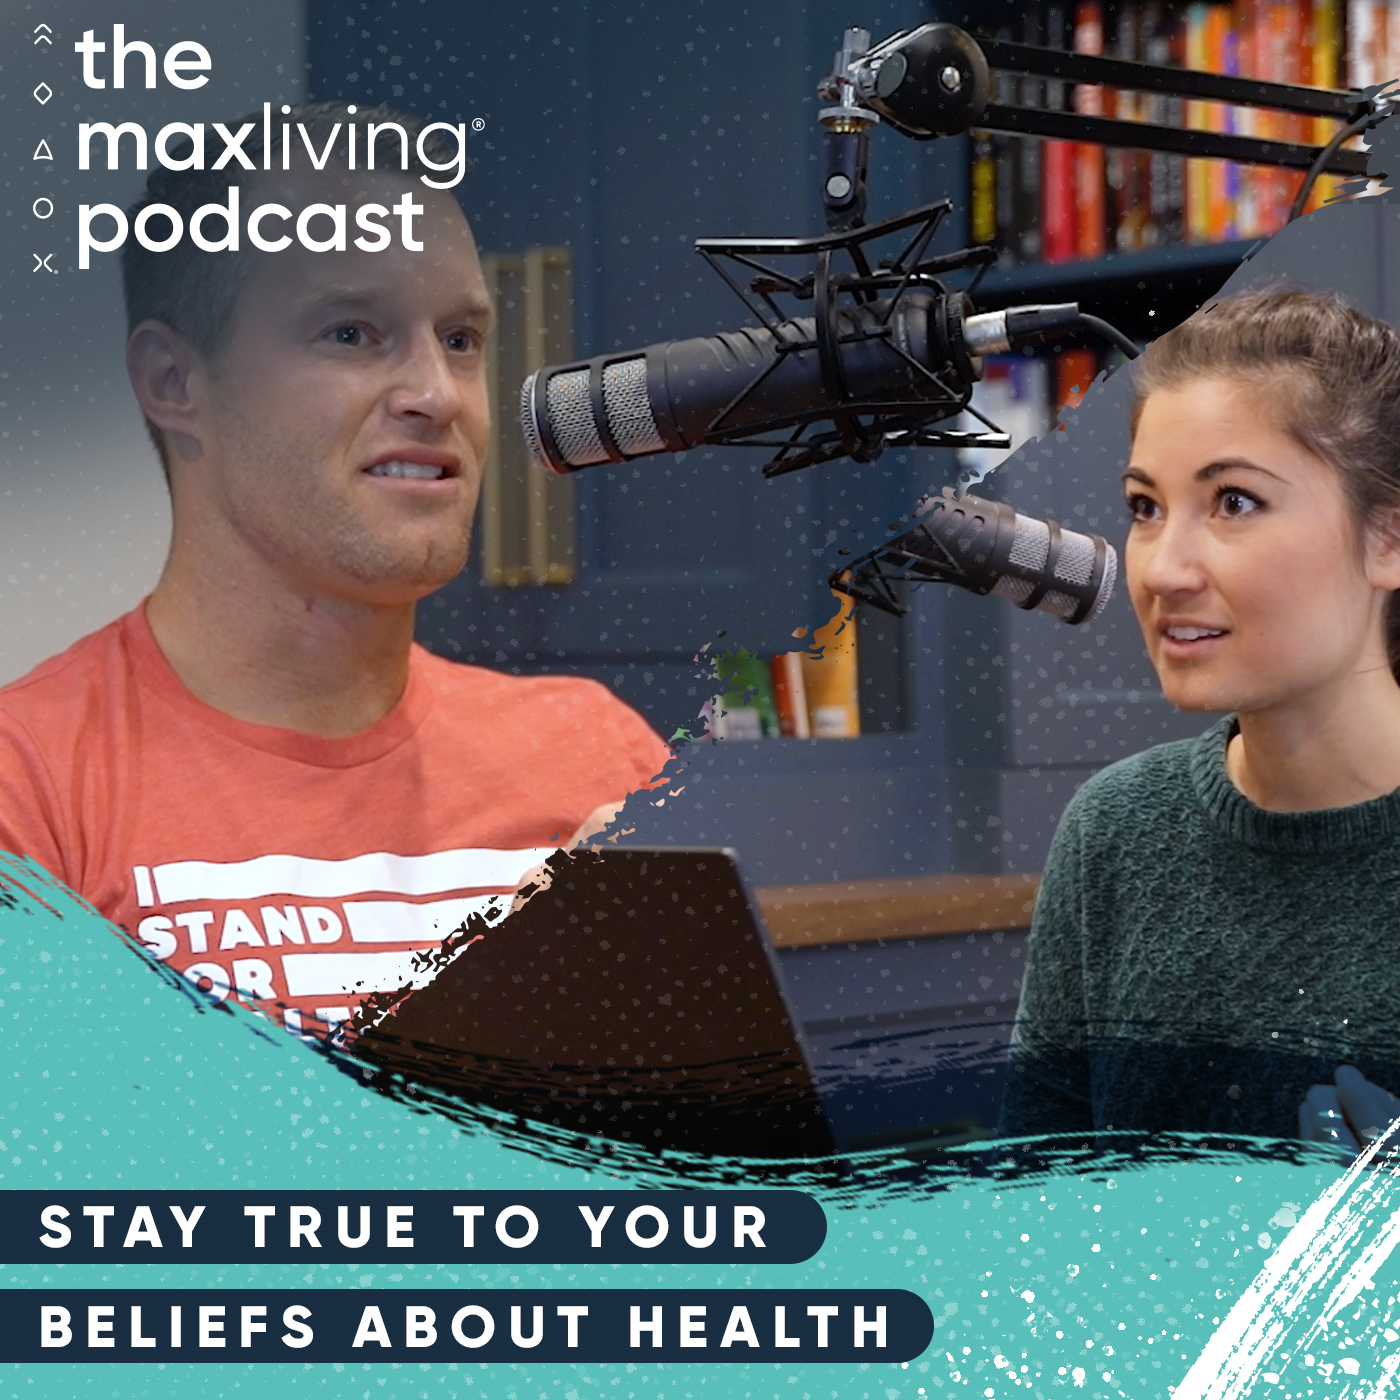 Stay True to Your Beliefs About Health